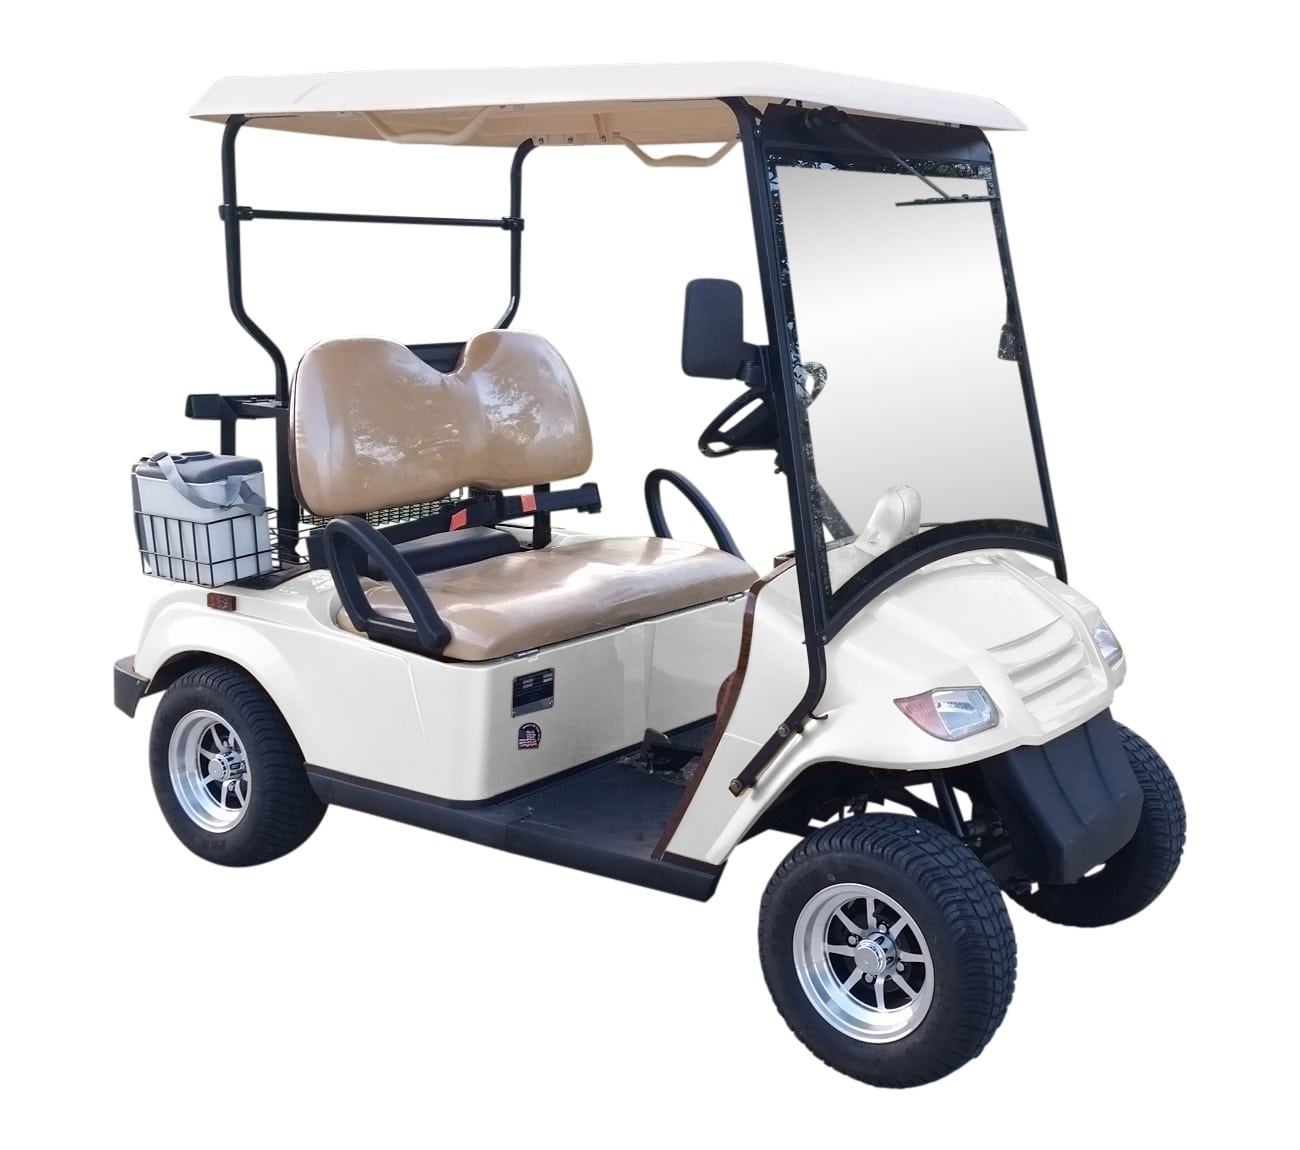 Bintelli 2pf Street Legal Golf Cart - Bintelli Electric Vehicles on golf carts for disabled, golf carts for fire depts, golf carts vehicle,